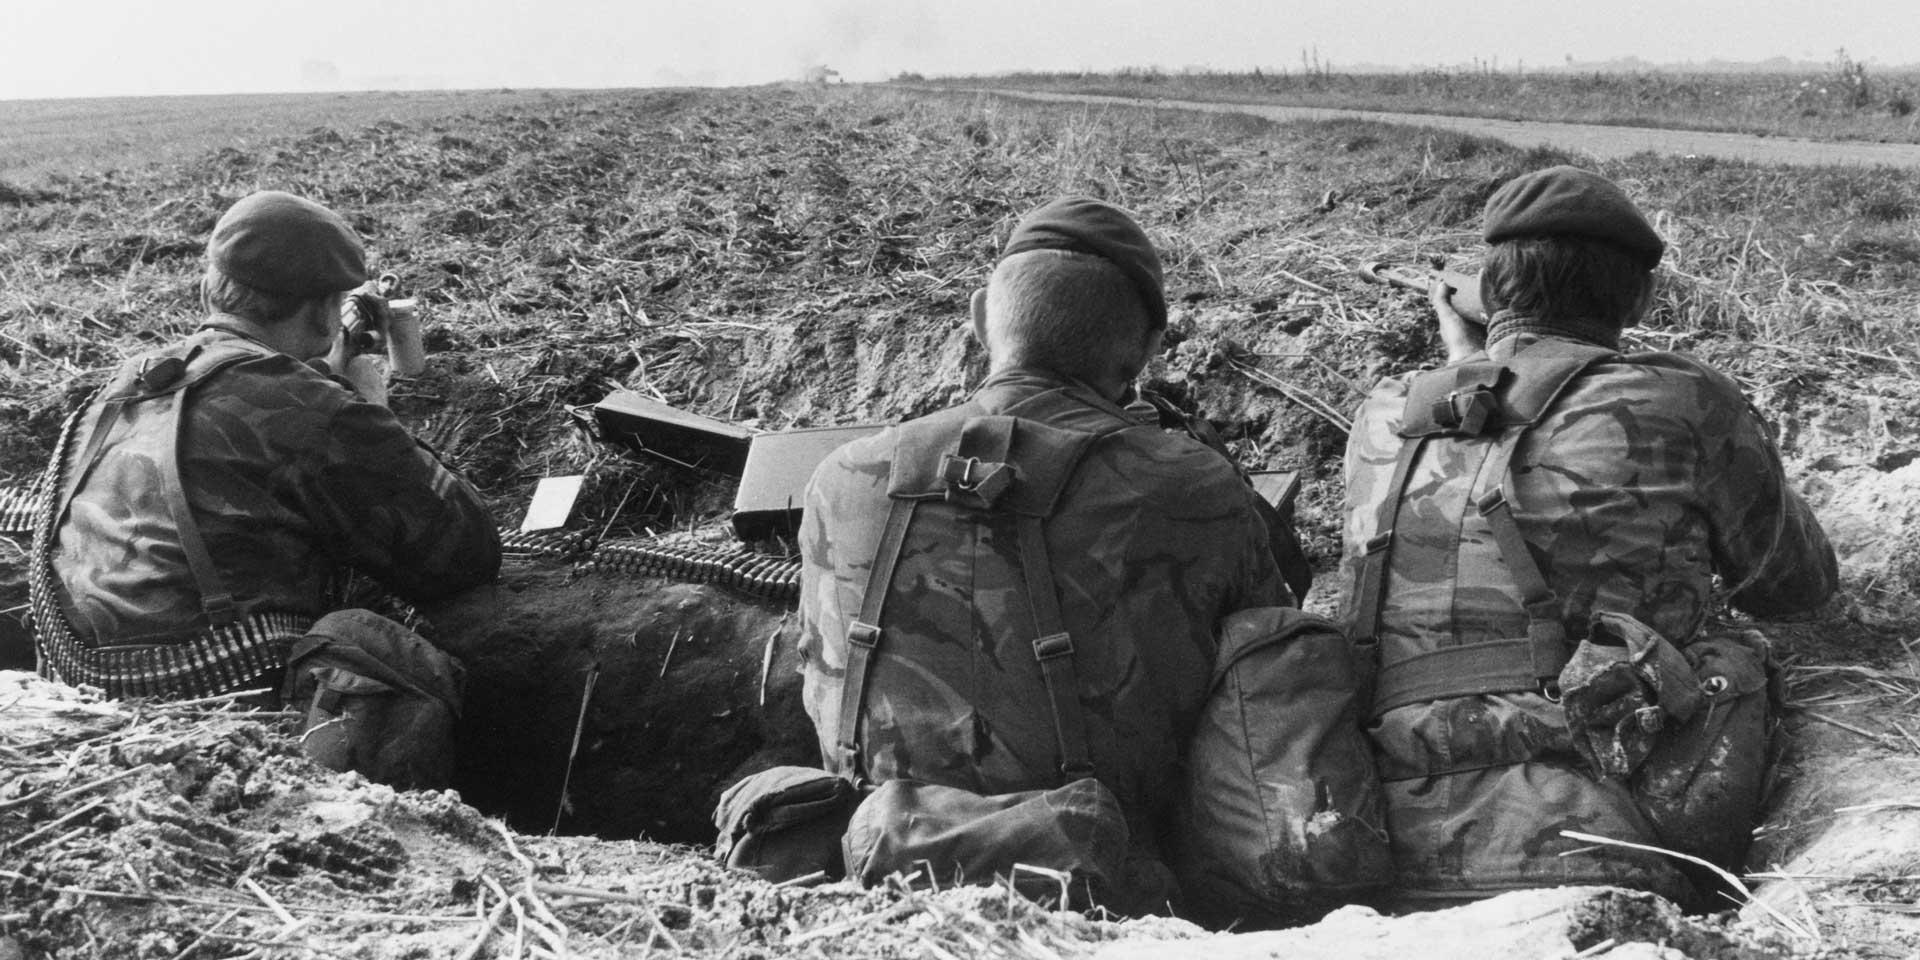 British soldiers dug-in by the side of a road during an exercise in West Germany, 1979